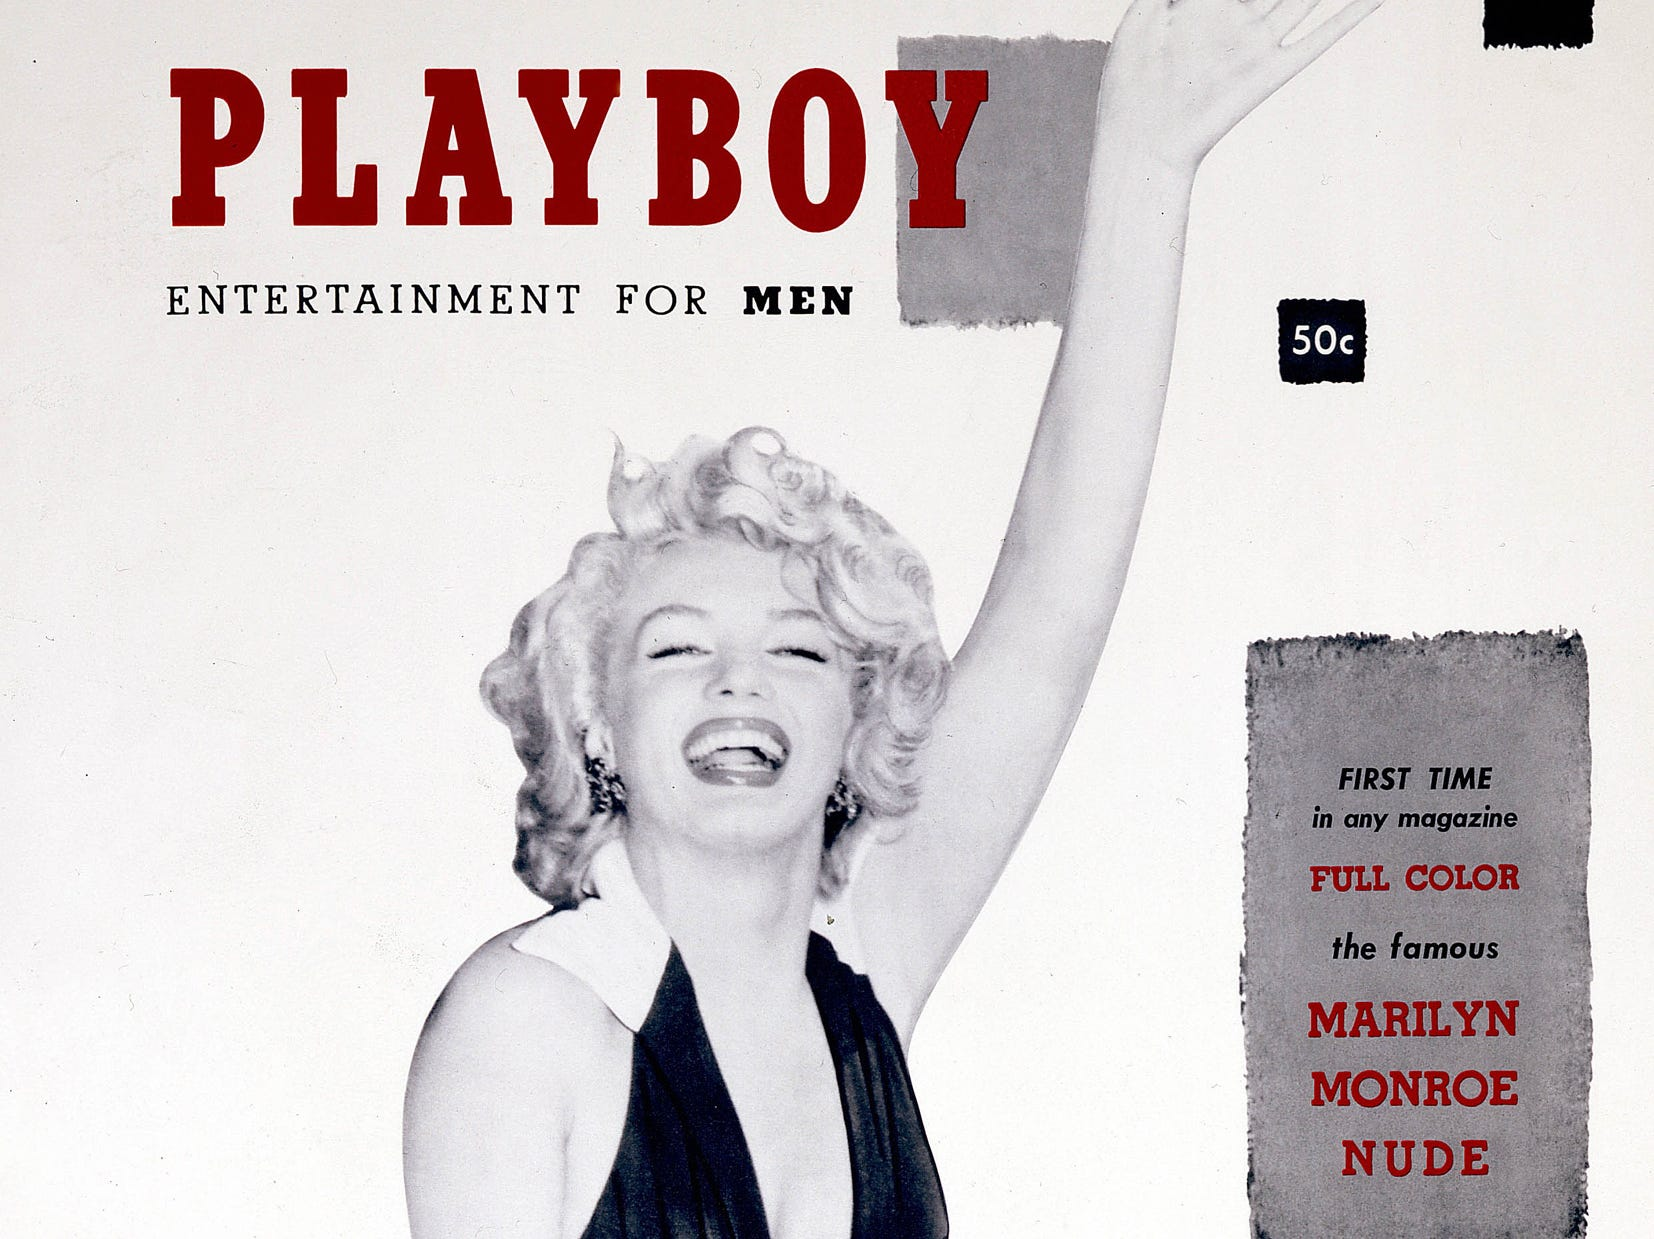 December 1953 cover for Playboy Magazine featuring Marilyn Monroe. --- DATE TAKEN: 2002     Playboy        HO      - handout ORG XMIT: PX81723